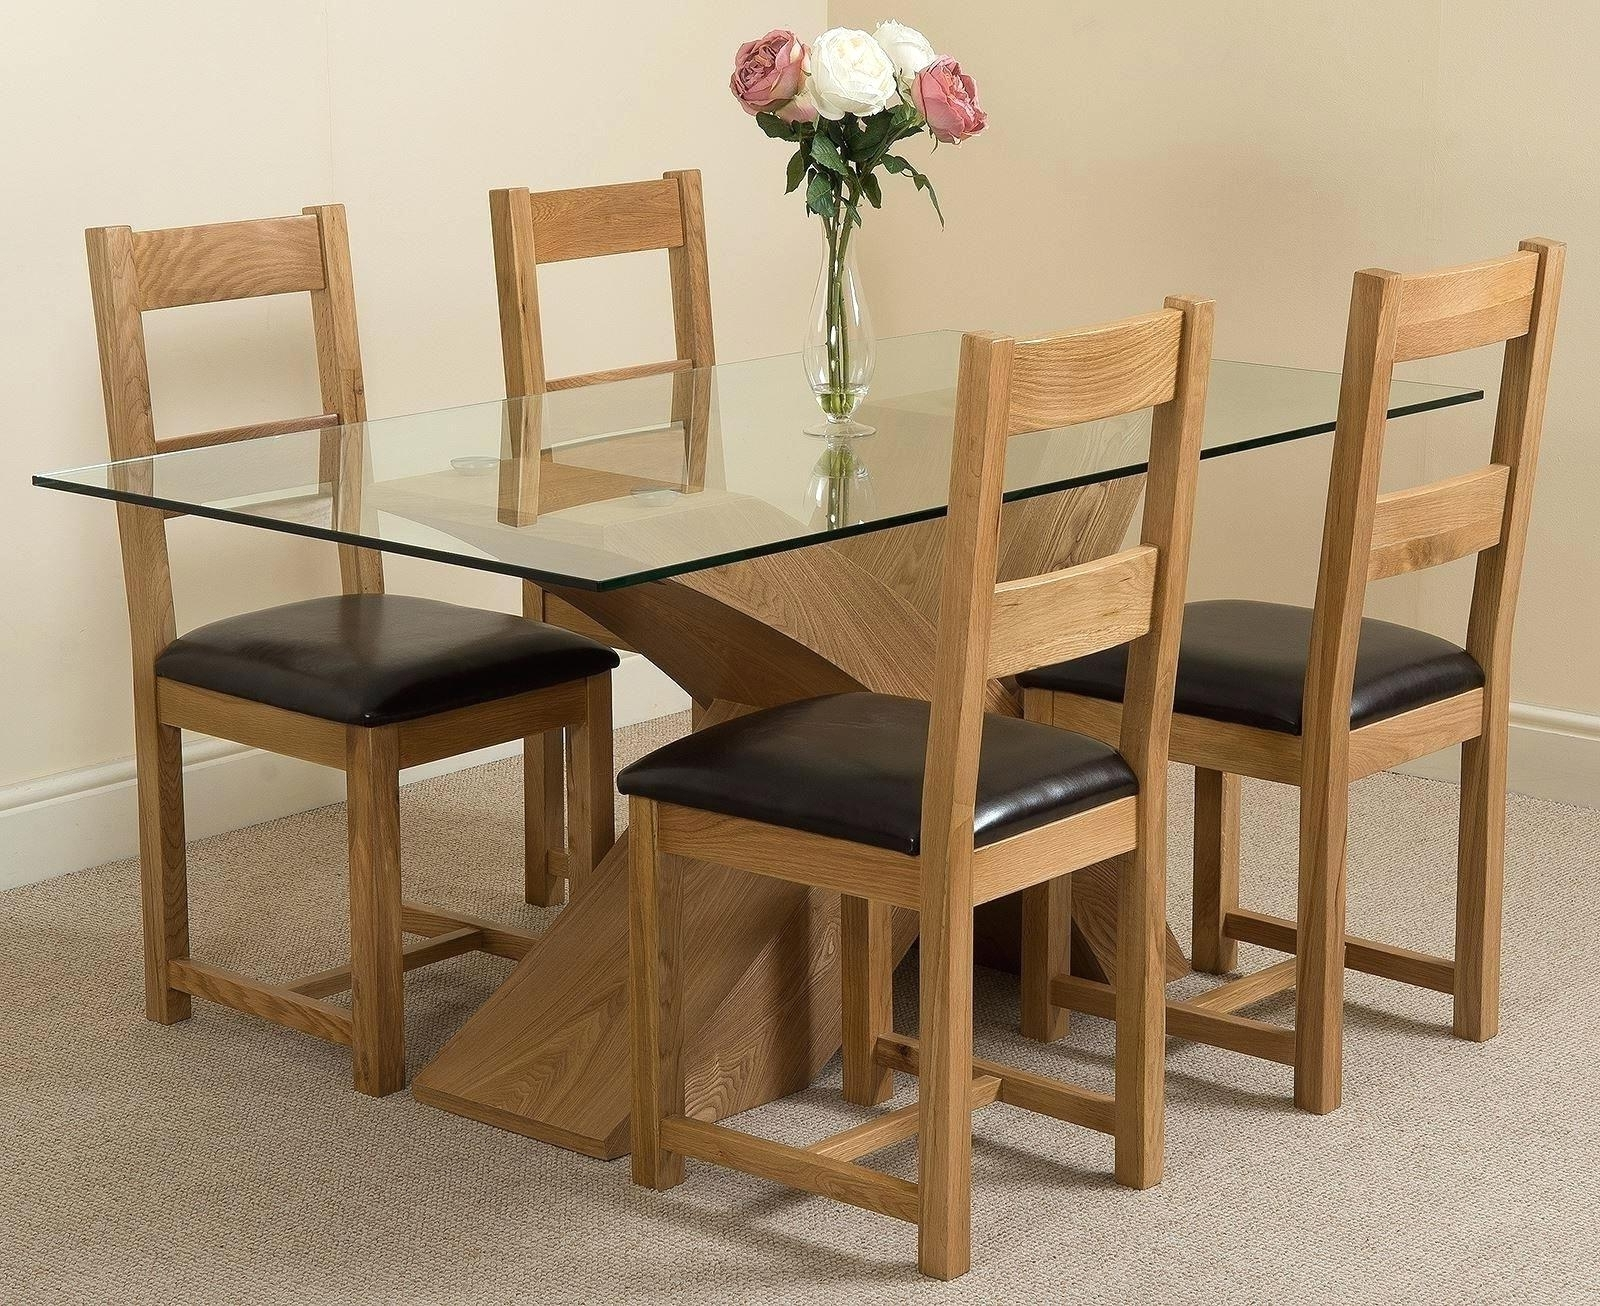 Light Oak Dining Tables And Chairs In Latest Chair : Light Oak Dining Table And Chairs Second Hand Furniture Uk (View 13 of 25)